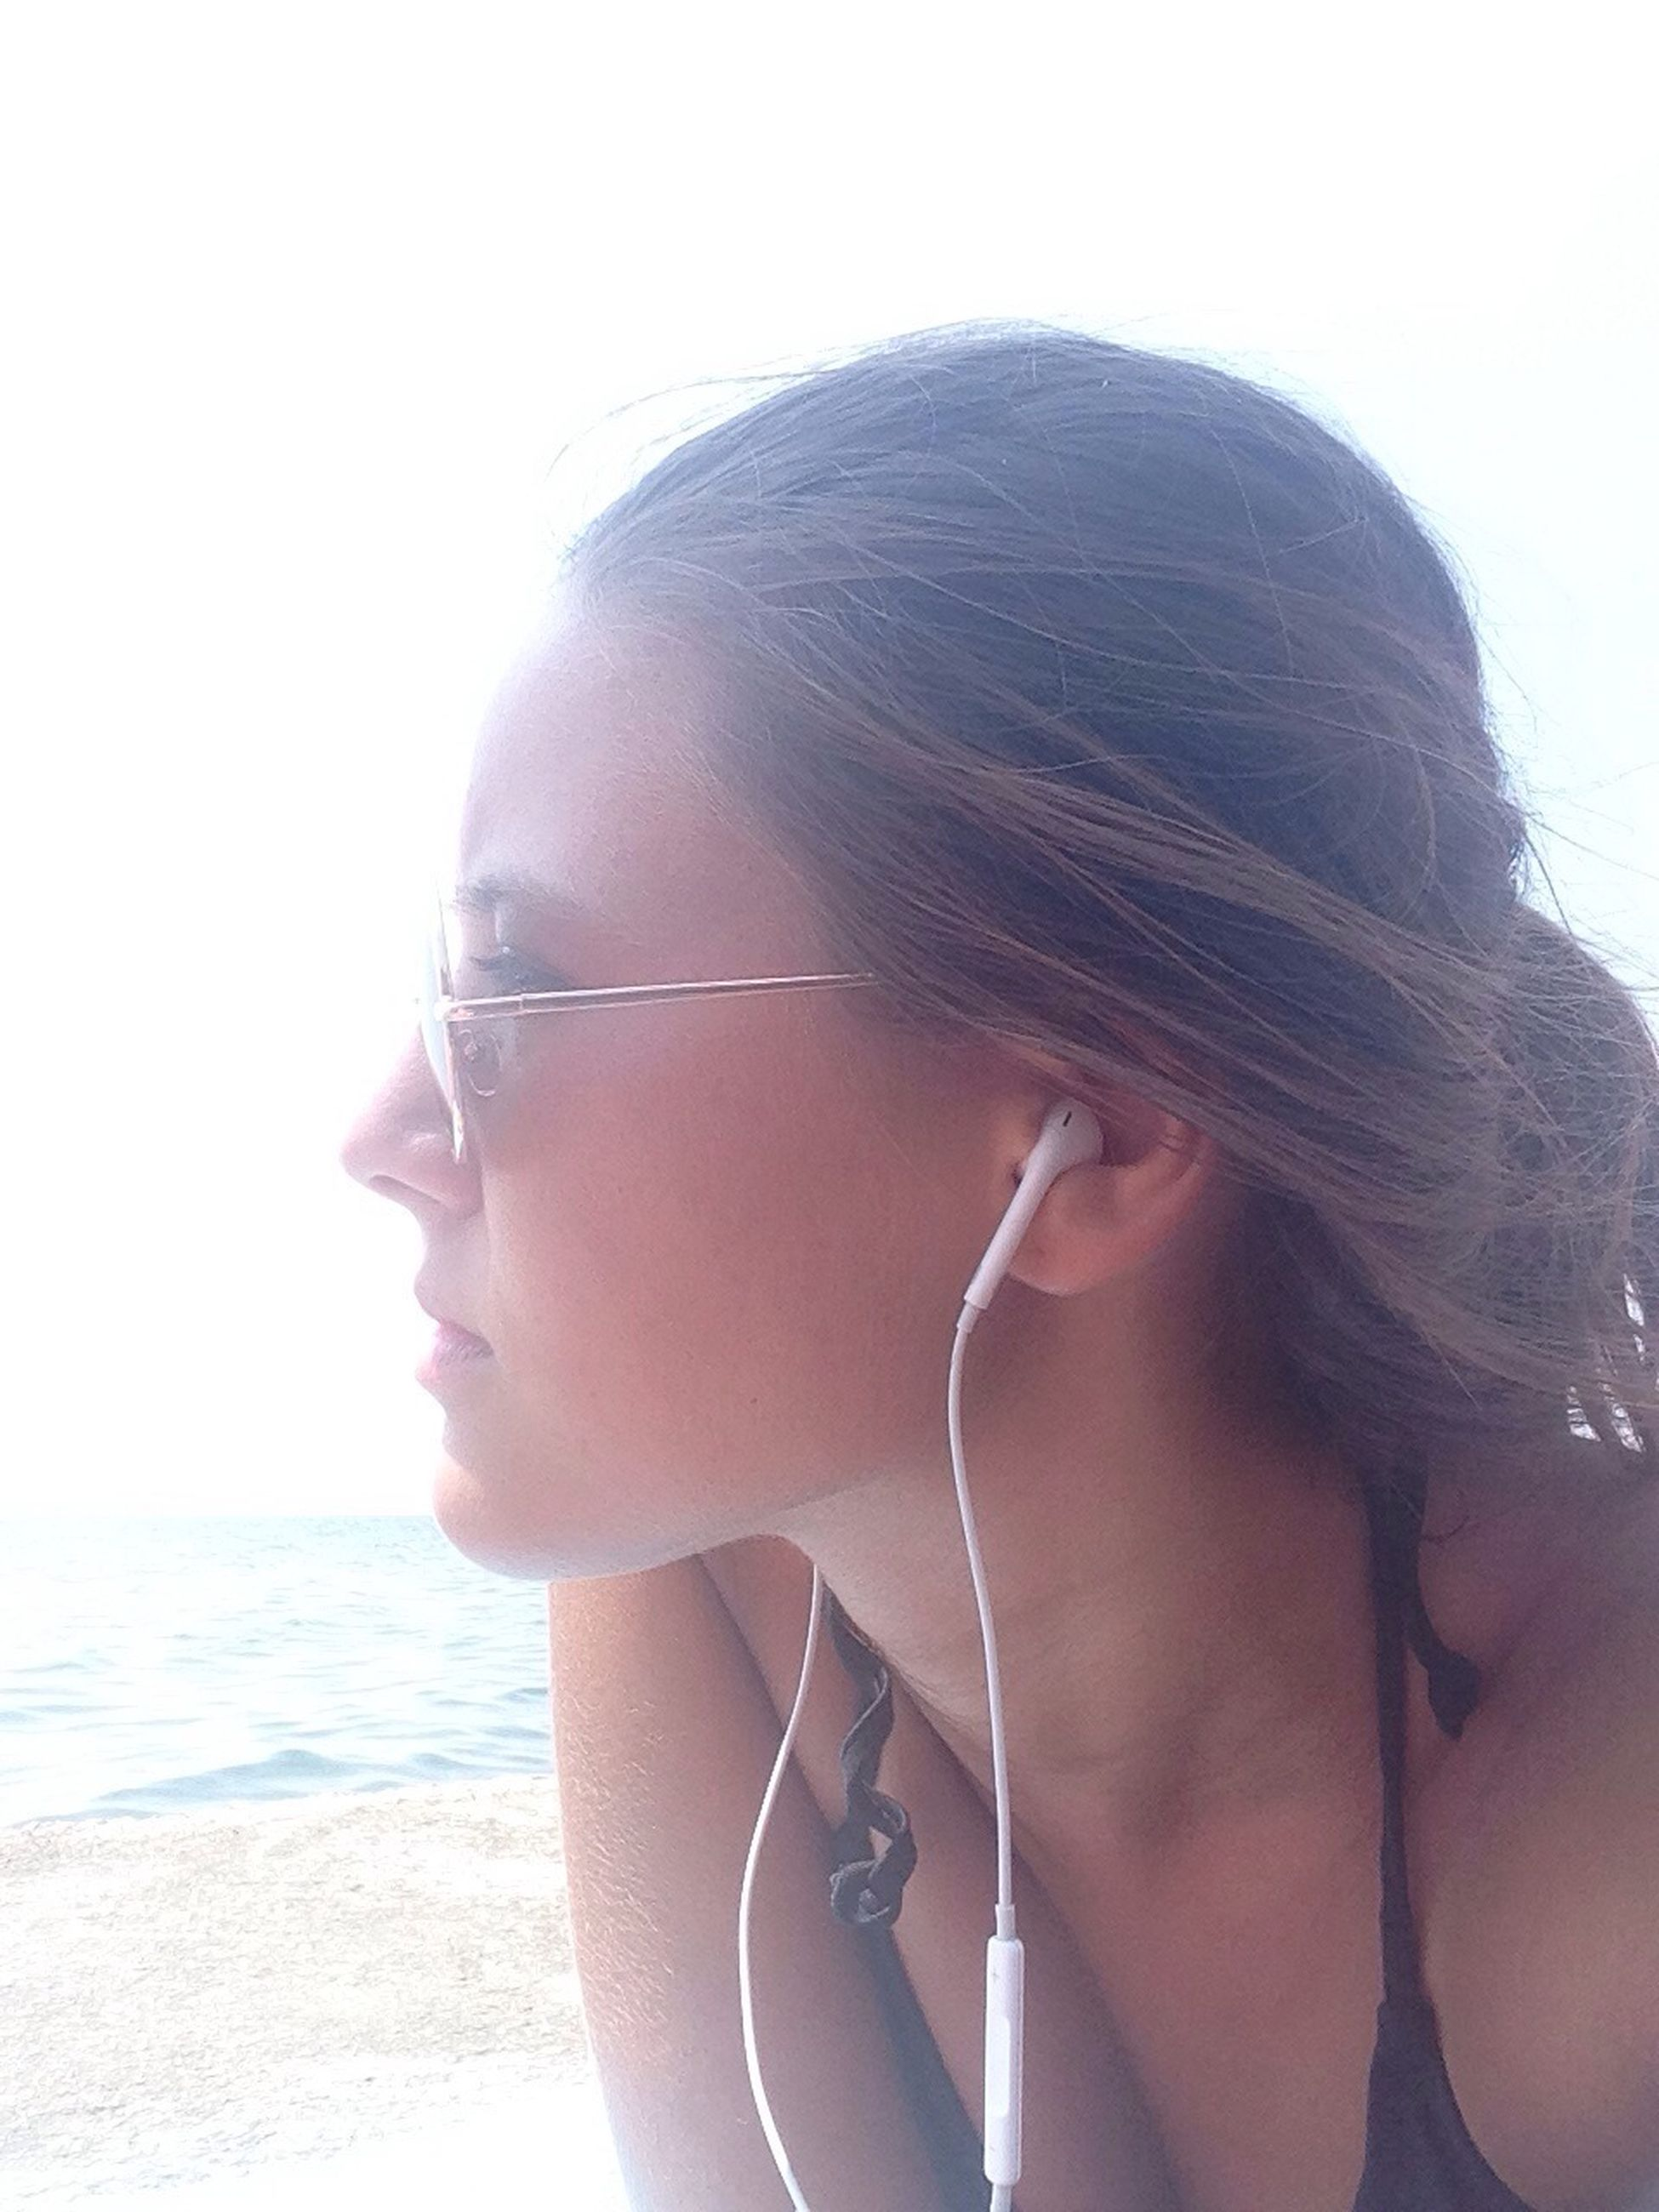 young adult, lifestyles, leisure activity, water, sea, headshot, young women, sunglasses, person, beach, clear sky, head and shoulders, long hair, vacations, front view, sunlight, looking at camera, close-up